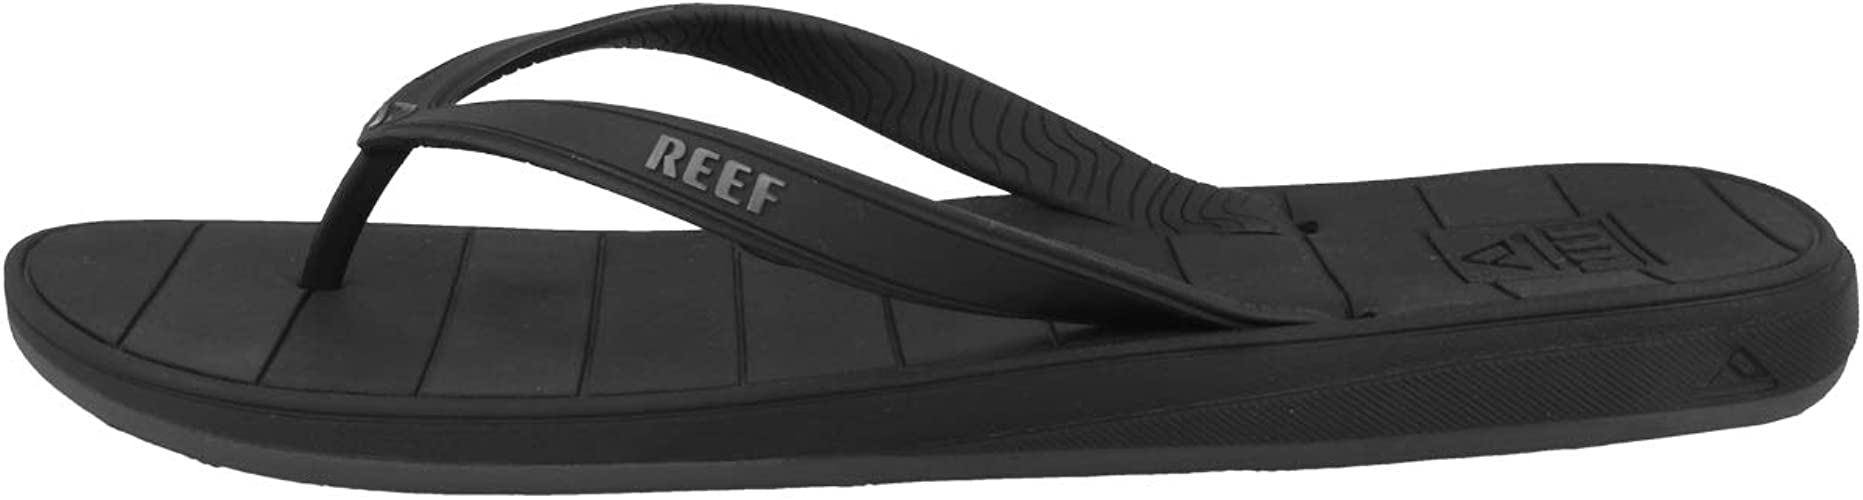 TALLA 44 EU. Reef Switchfoot LX Black, Chanclas Hombre